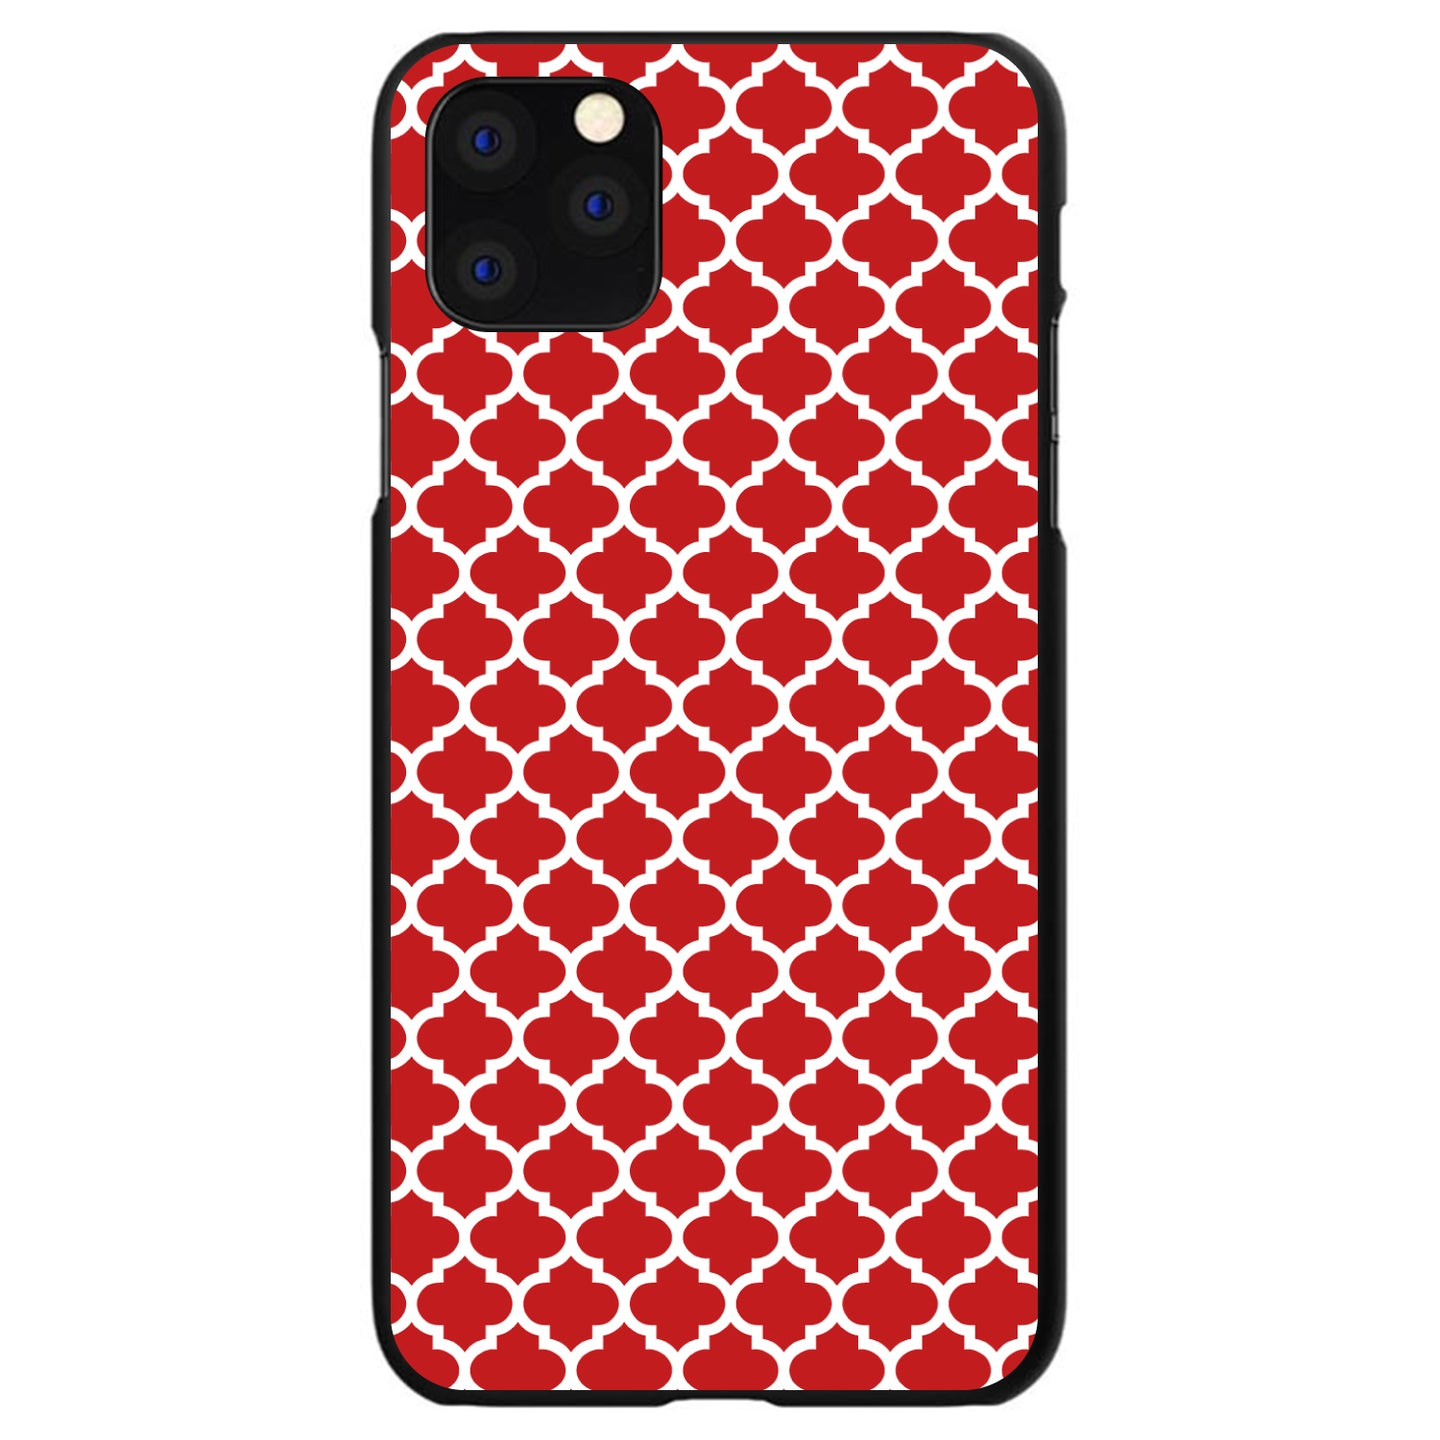 DistinctInk® Hard Plastic Snap-On Case for Apple iPhone - Red White Moroccan Lattice